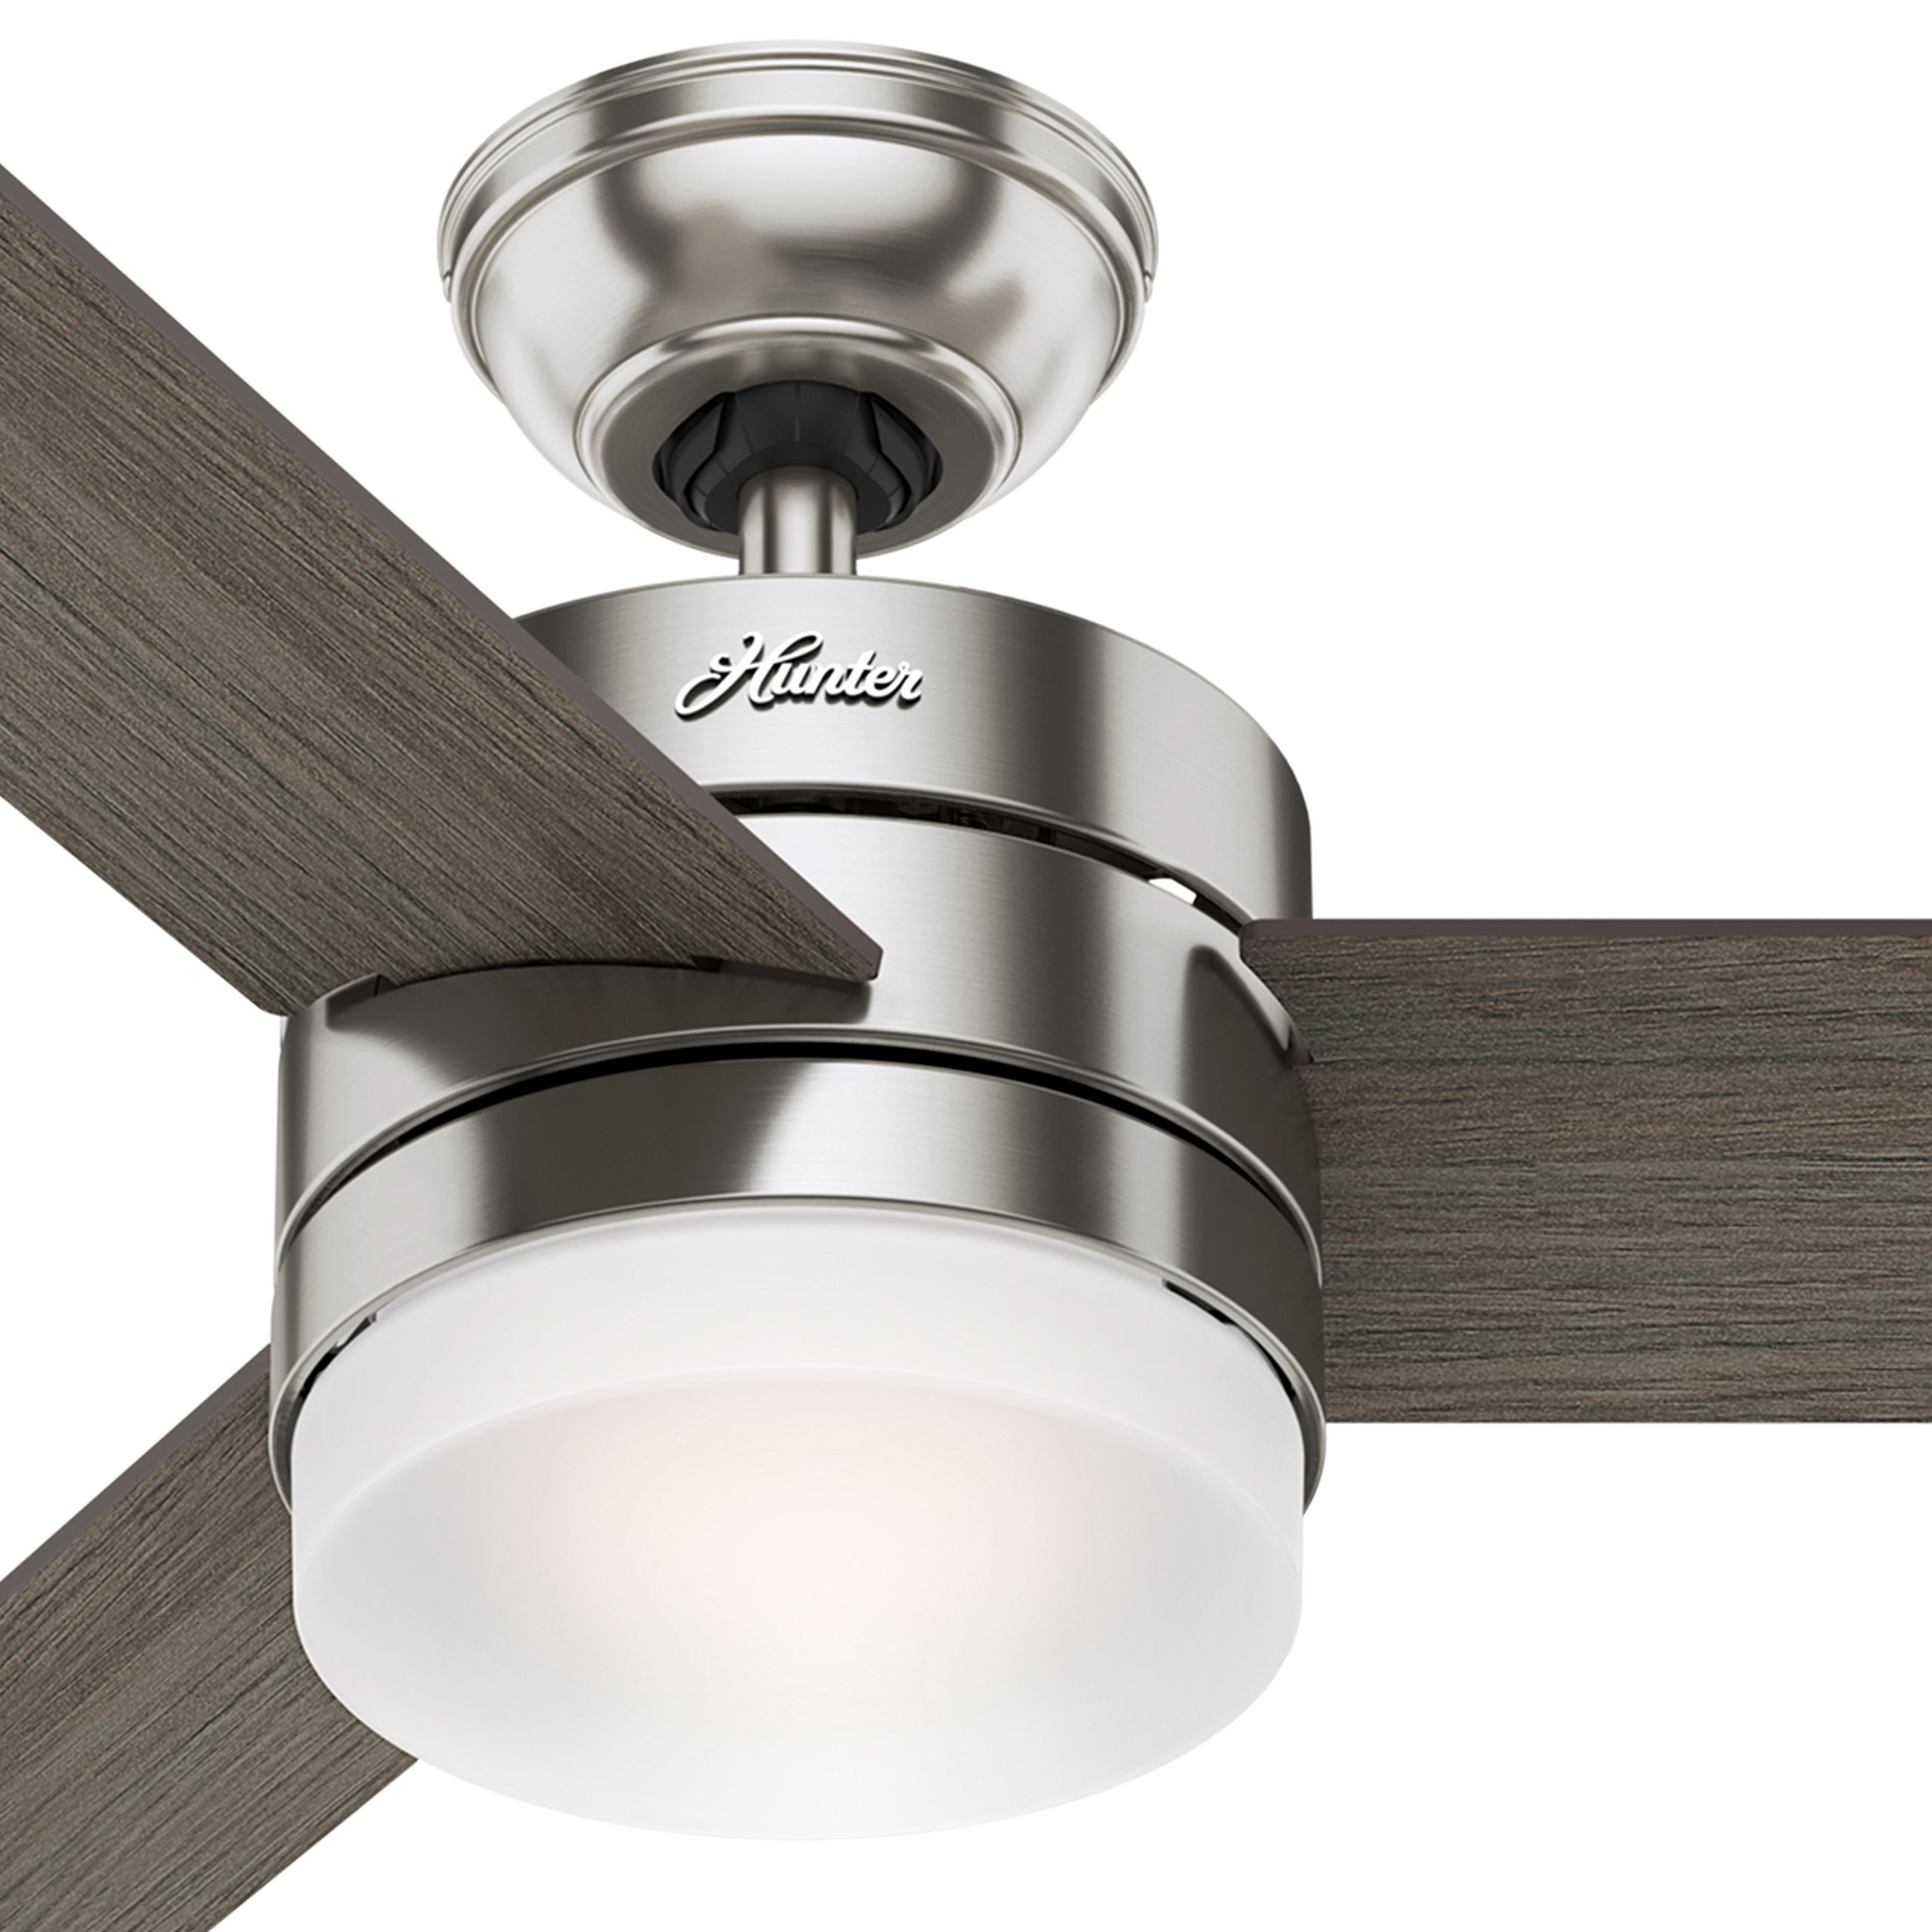 Hunter 54'' Contemporary Ceiling Fan with Remote Control in Brushed Nickel (Certified Refurbished) by Hunter Fan Company